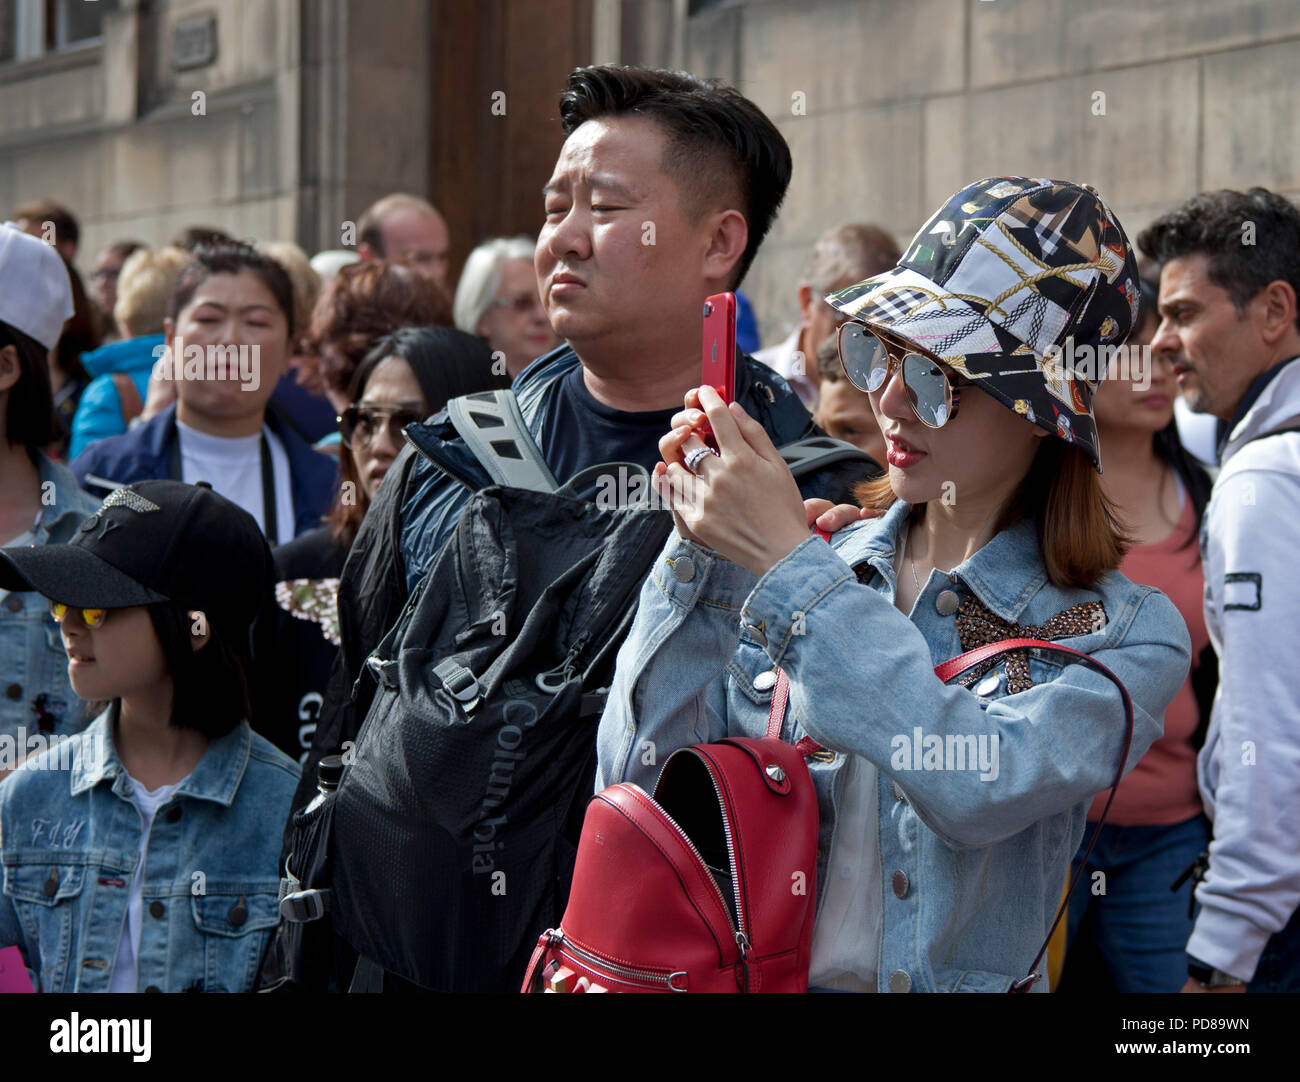 Edinburgh, Scotland UK, 7 August 2018, Edinburgh Fringe on the Royal Mile, on a sunny afternoon the sublime to the ridiculous took to the street with a flashing street statue and a street performers novel way to make use of plumbing plungers and some interesting looking audience members. - Stock Image